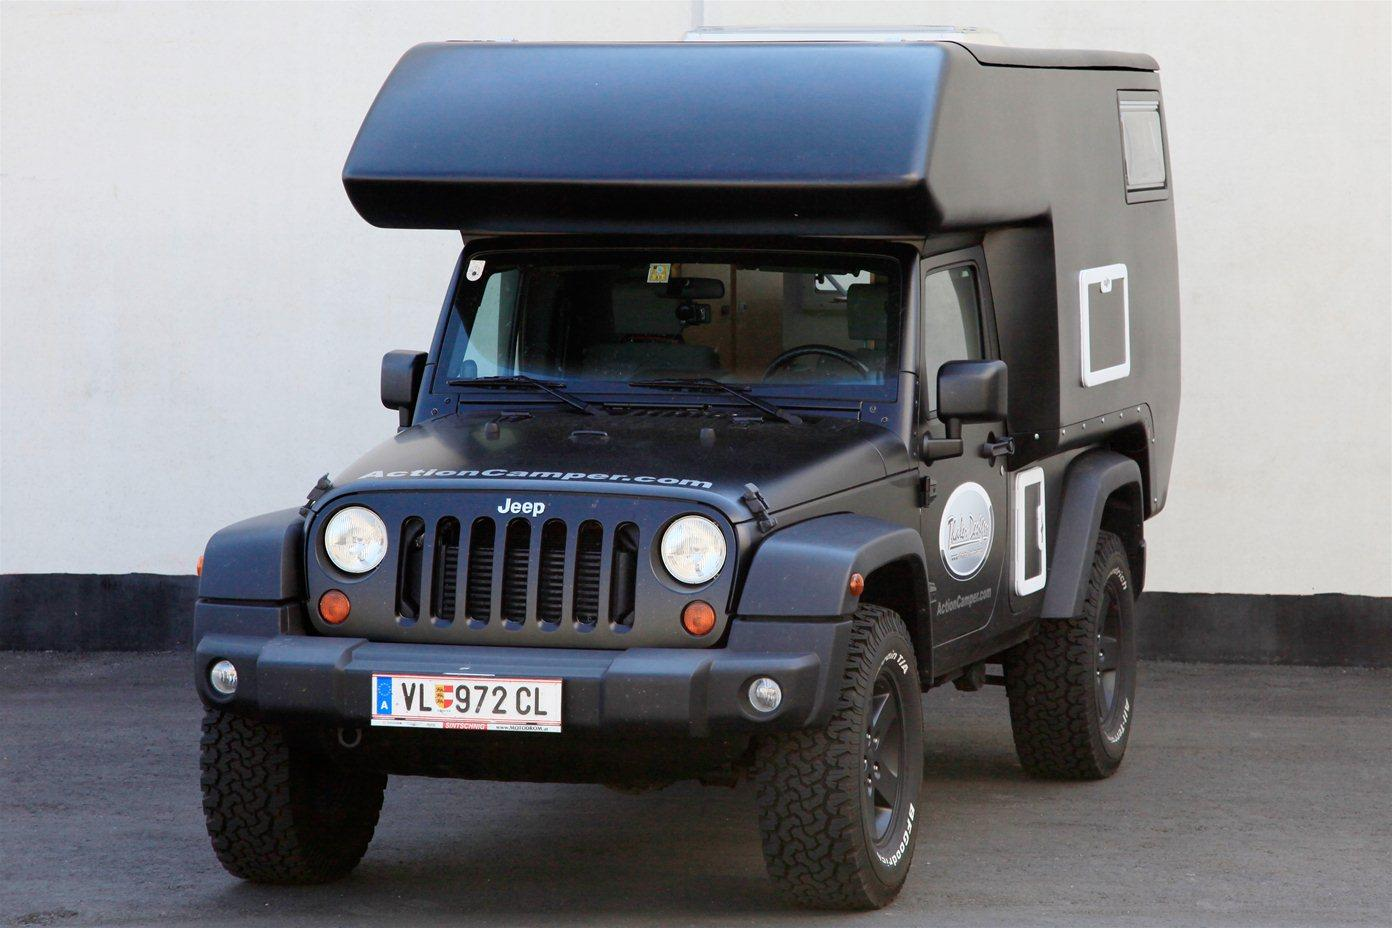 The Action Camper brings cooking and sleeping space to the Jeep JK Wrangler Unlimited